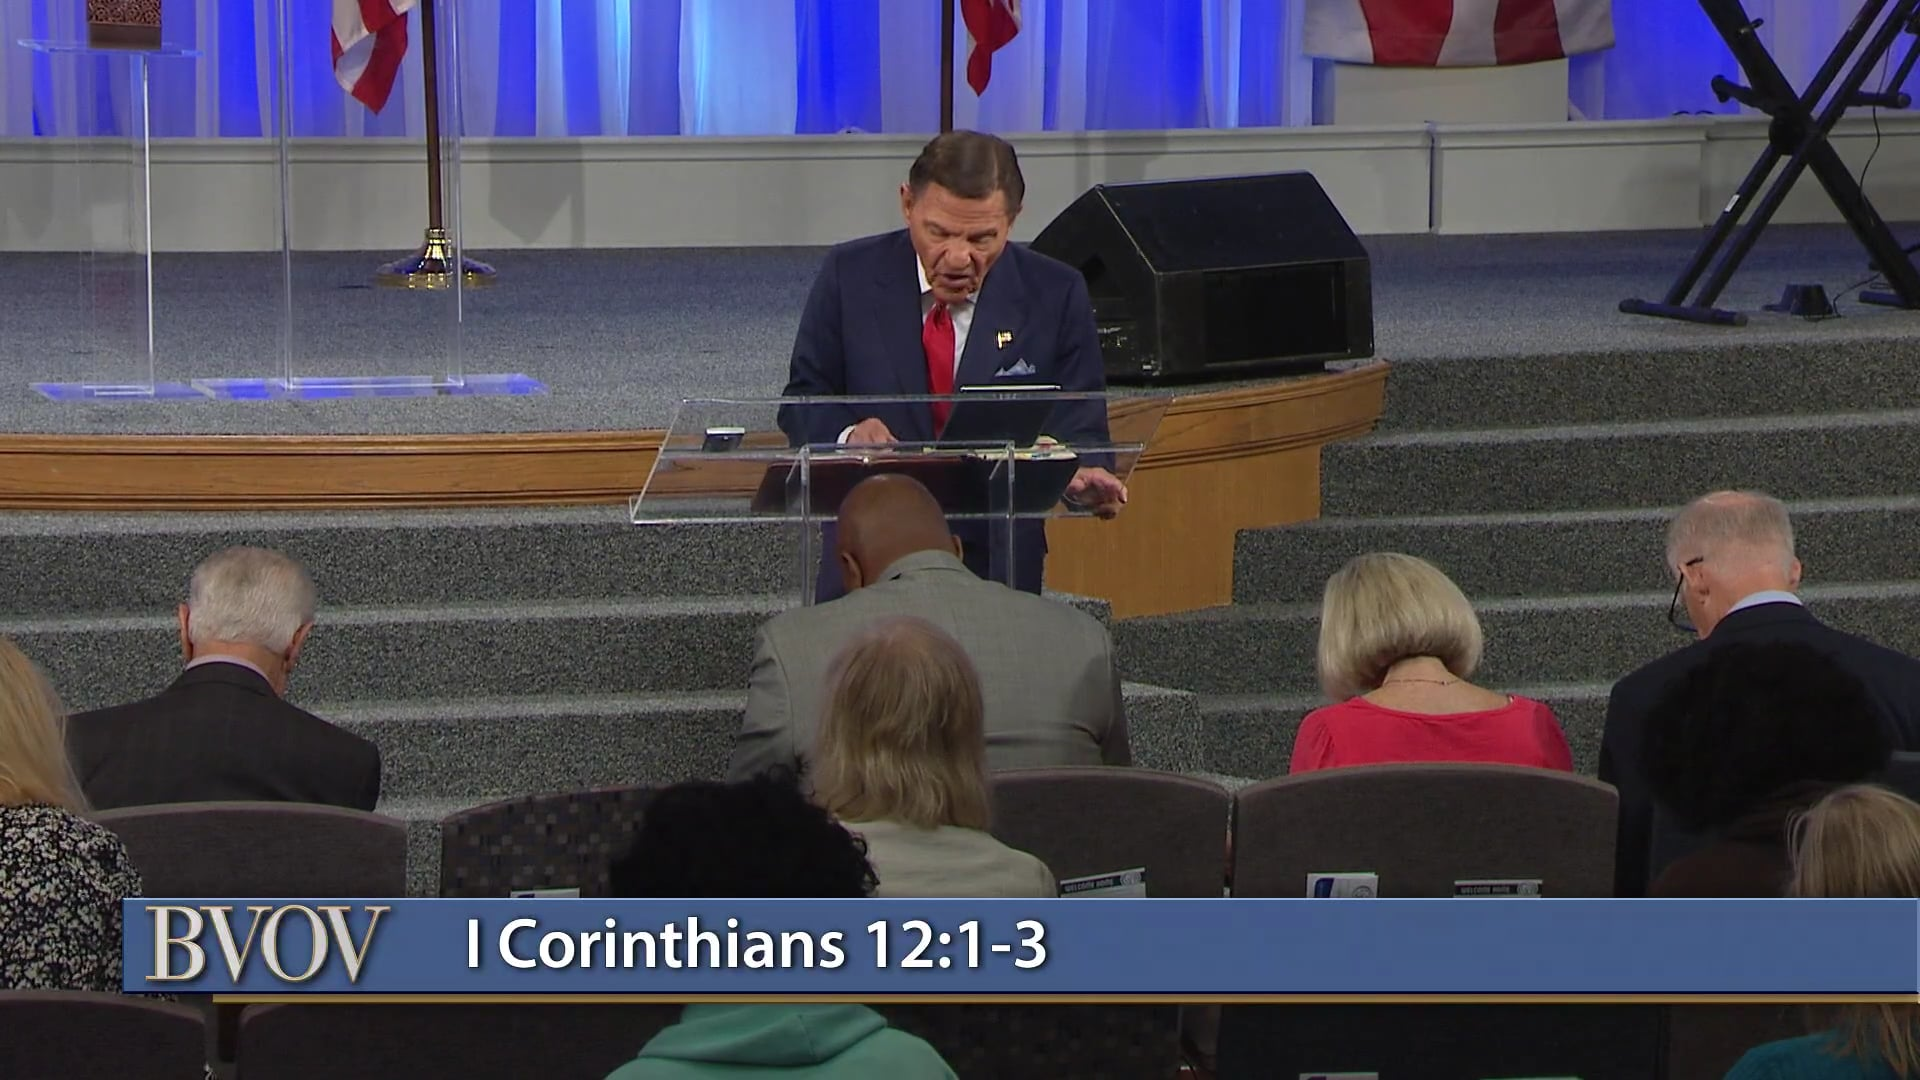 It's time to call yourself well! Watch Believer's Voice of Victory as Kenneth Copeland teaches you how to actively receive your healing through believing and declaring God's WORD over your body. Today is your day for a healing miracle!